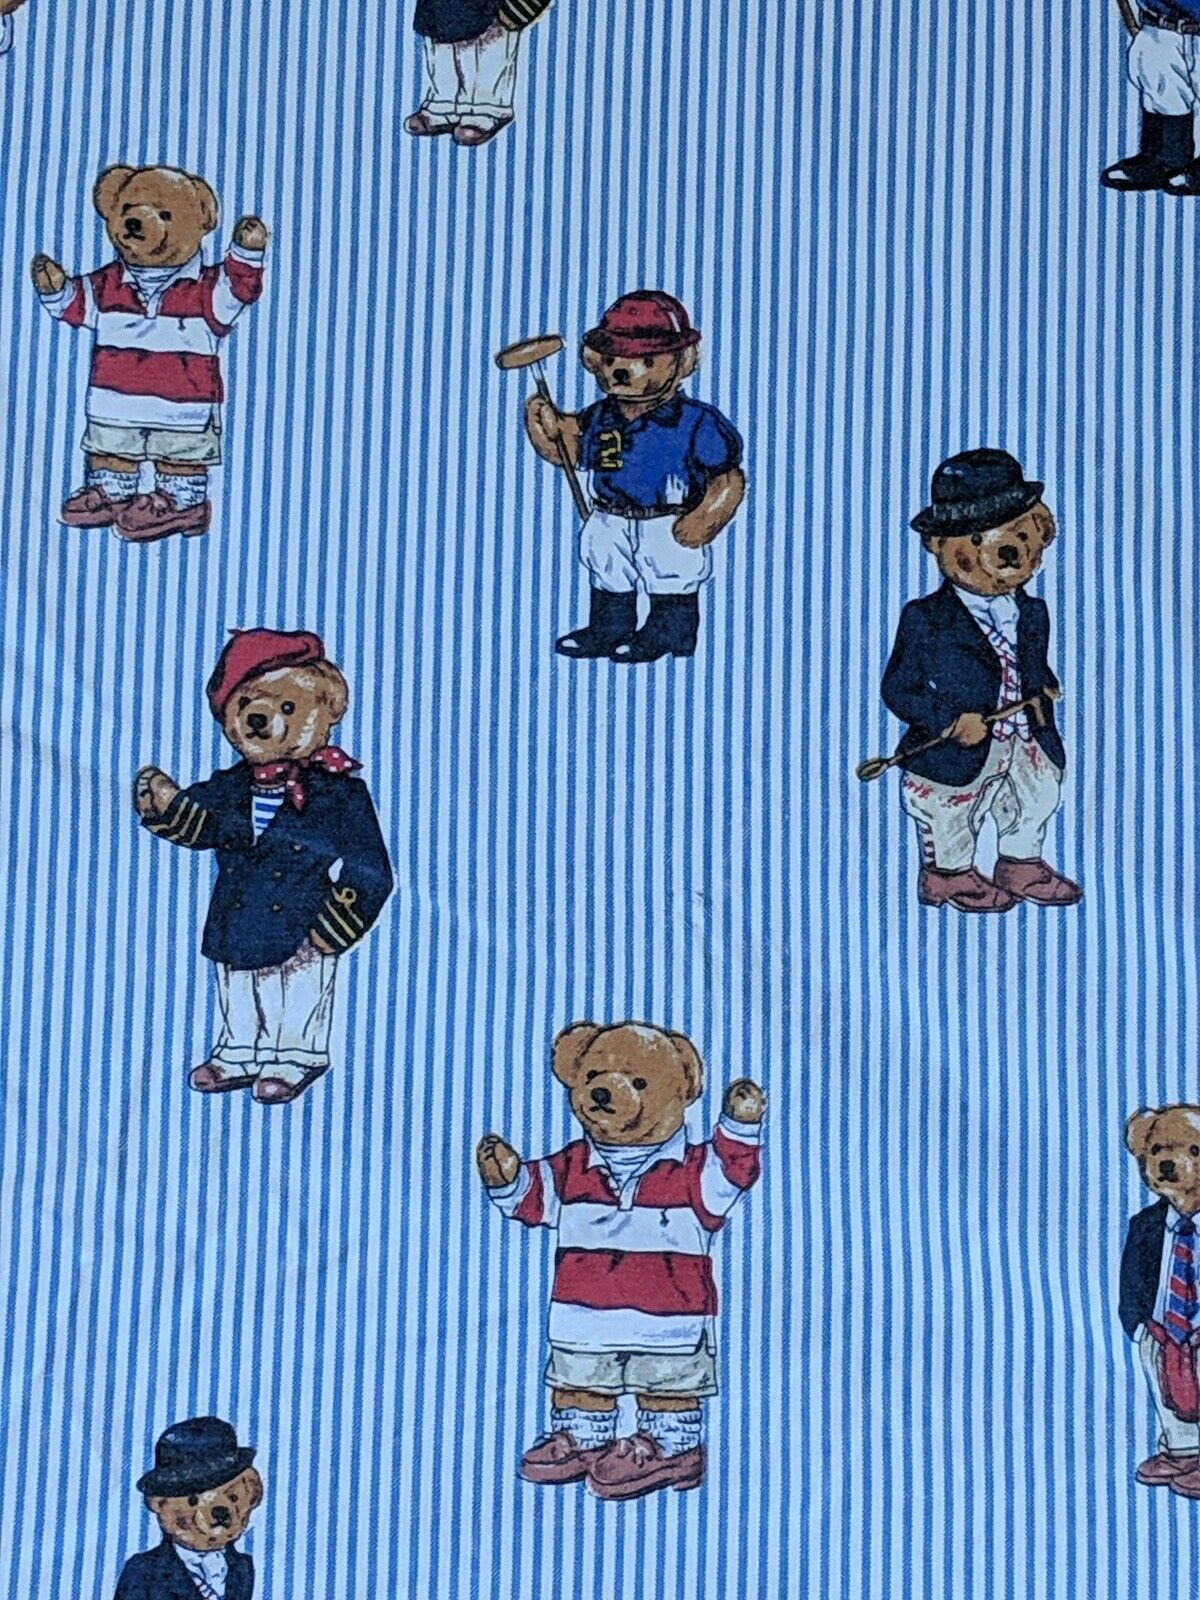 VTG 90s Polo Bear Ralph Lauren Twin Fitted Sheet Cotton Striped Made in USA